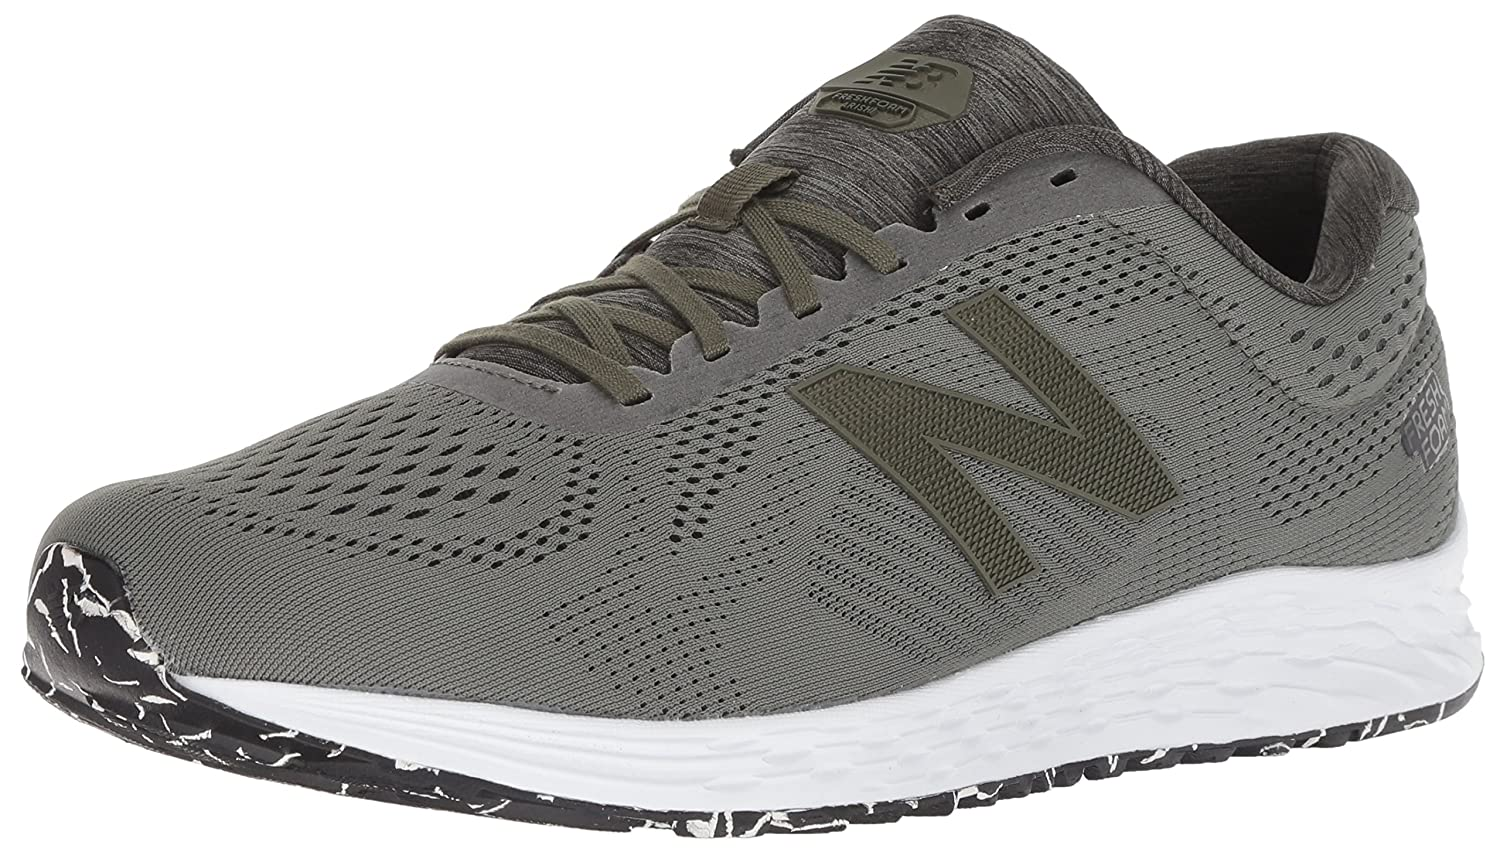 Dark Covert vert noir New Balance Fresh Foam Arishi, Running Homme 41.5 EUR - Width 4E